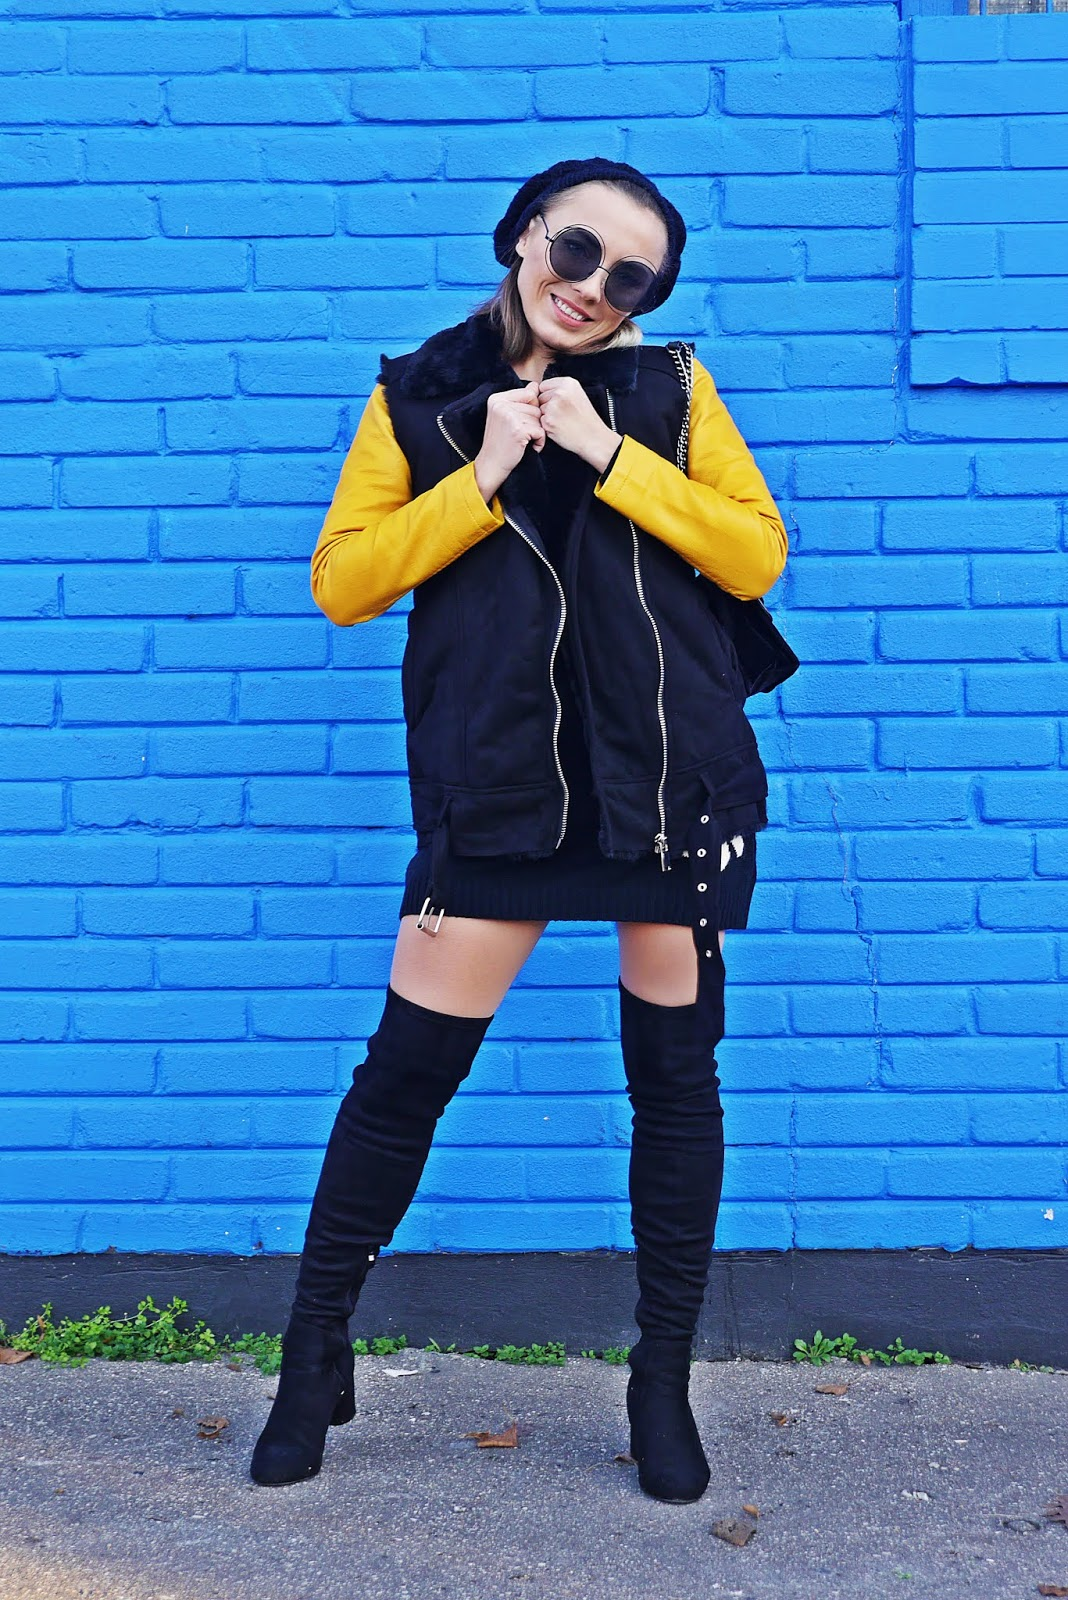 4_daisy_sweater_mustard_biker_jacket_high_knee_boots_201118